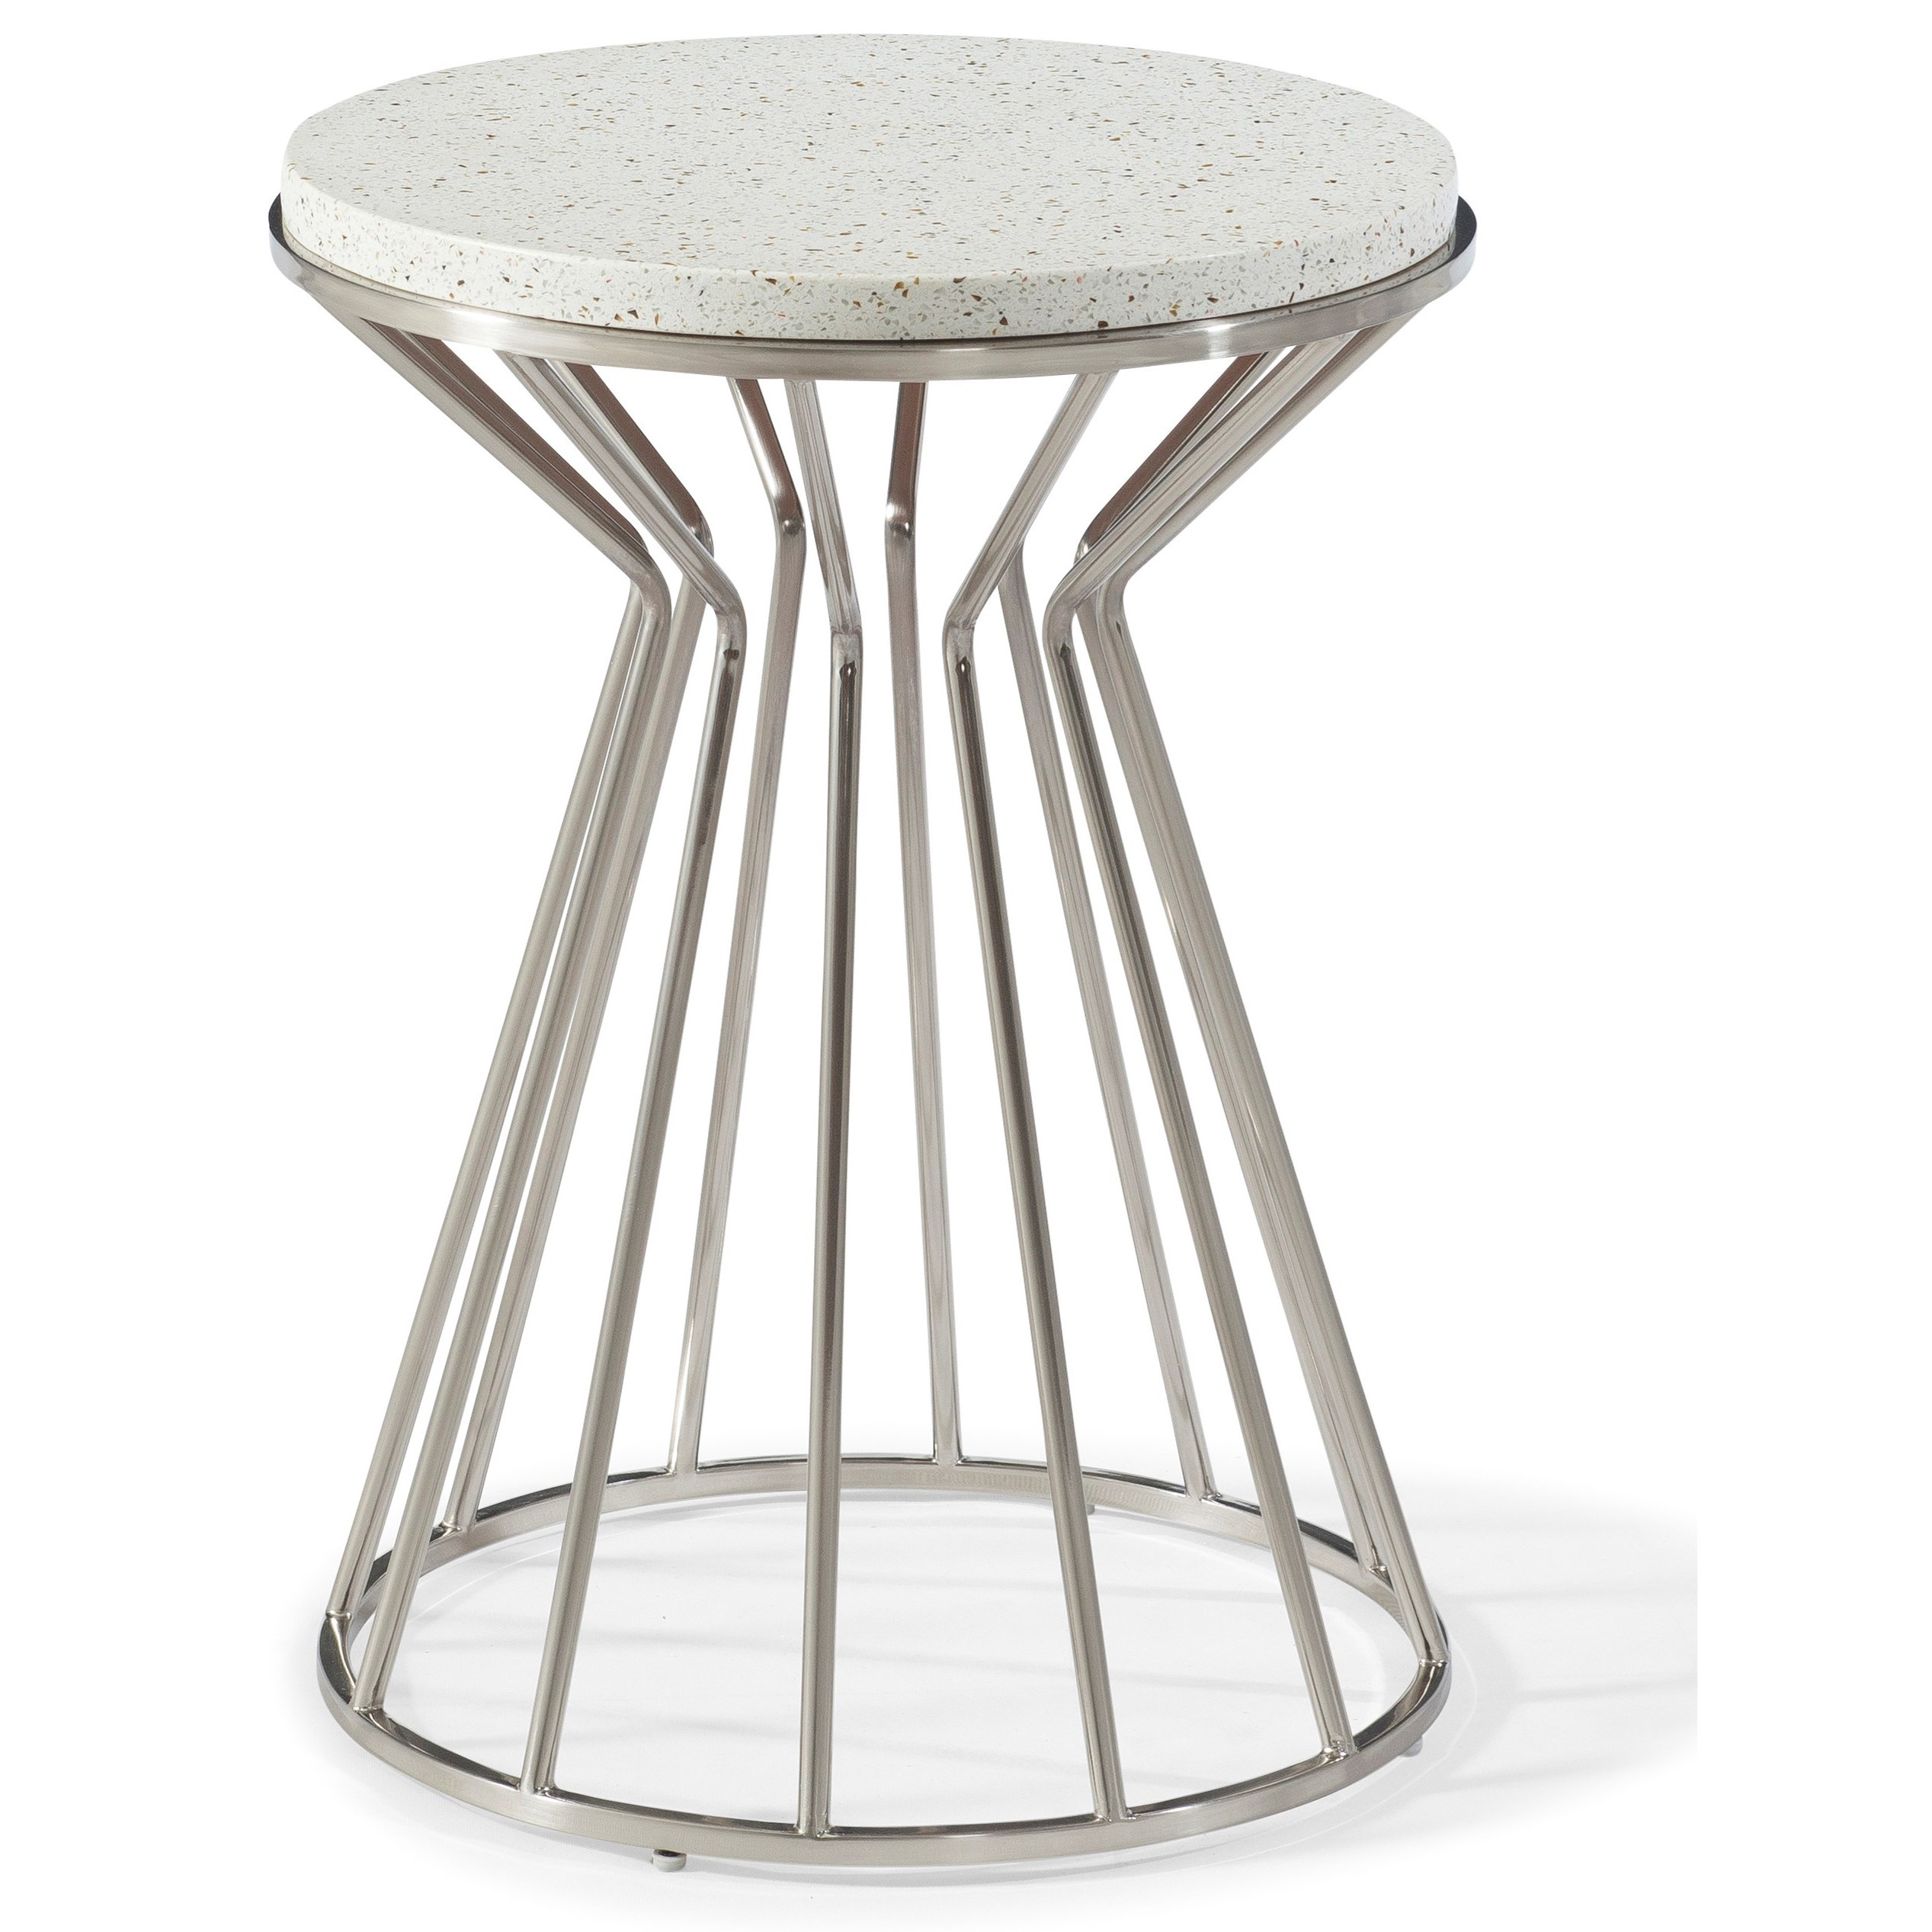 Simply Urban Westside Round End Table by Carolina Preserves at Rotmans